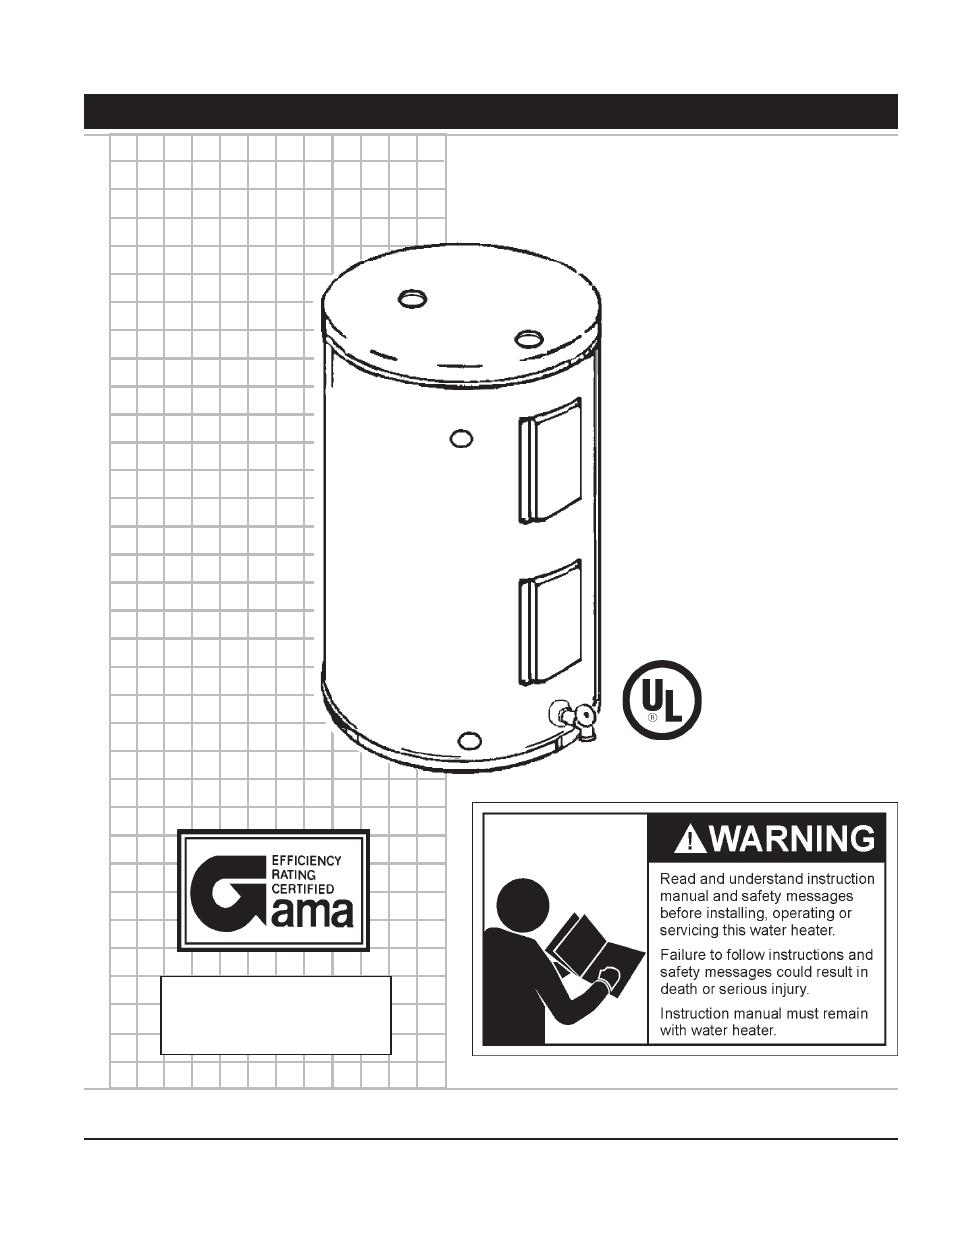 Richmond Hot Water Heater Wiring Diagram Heahone Jack Plug